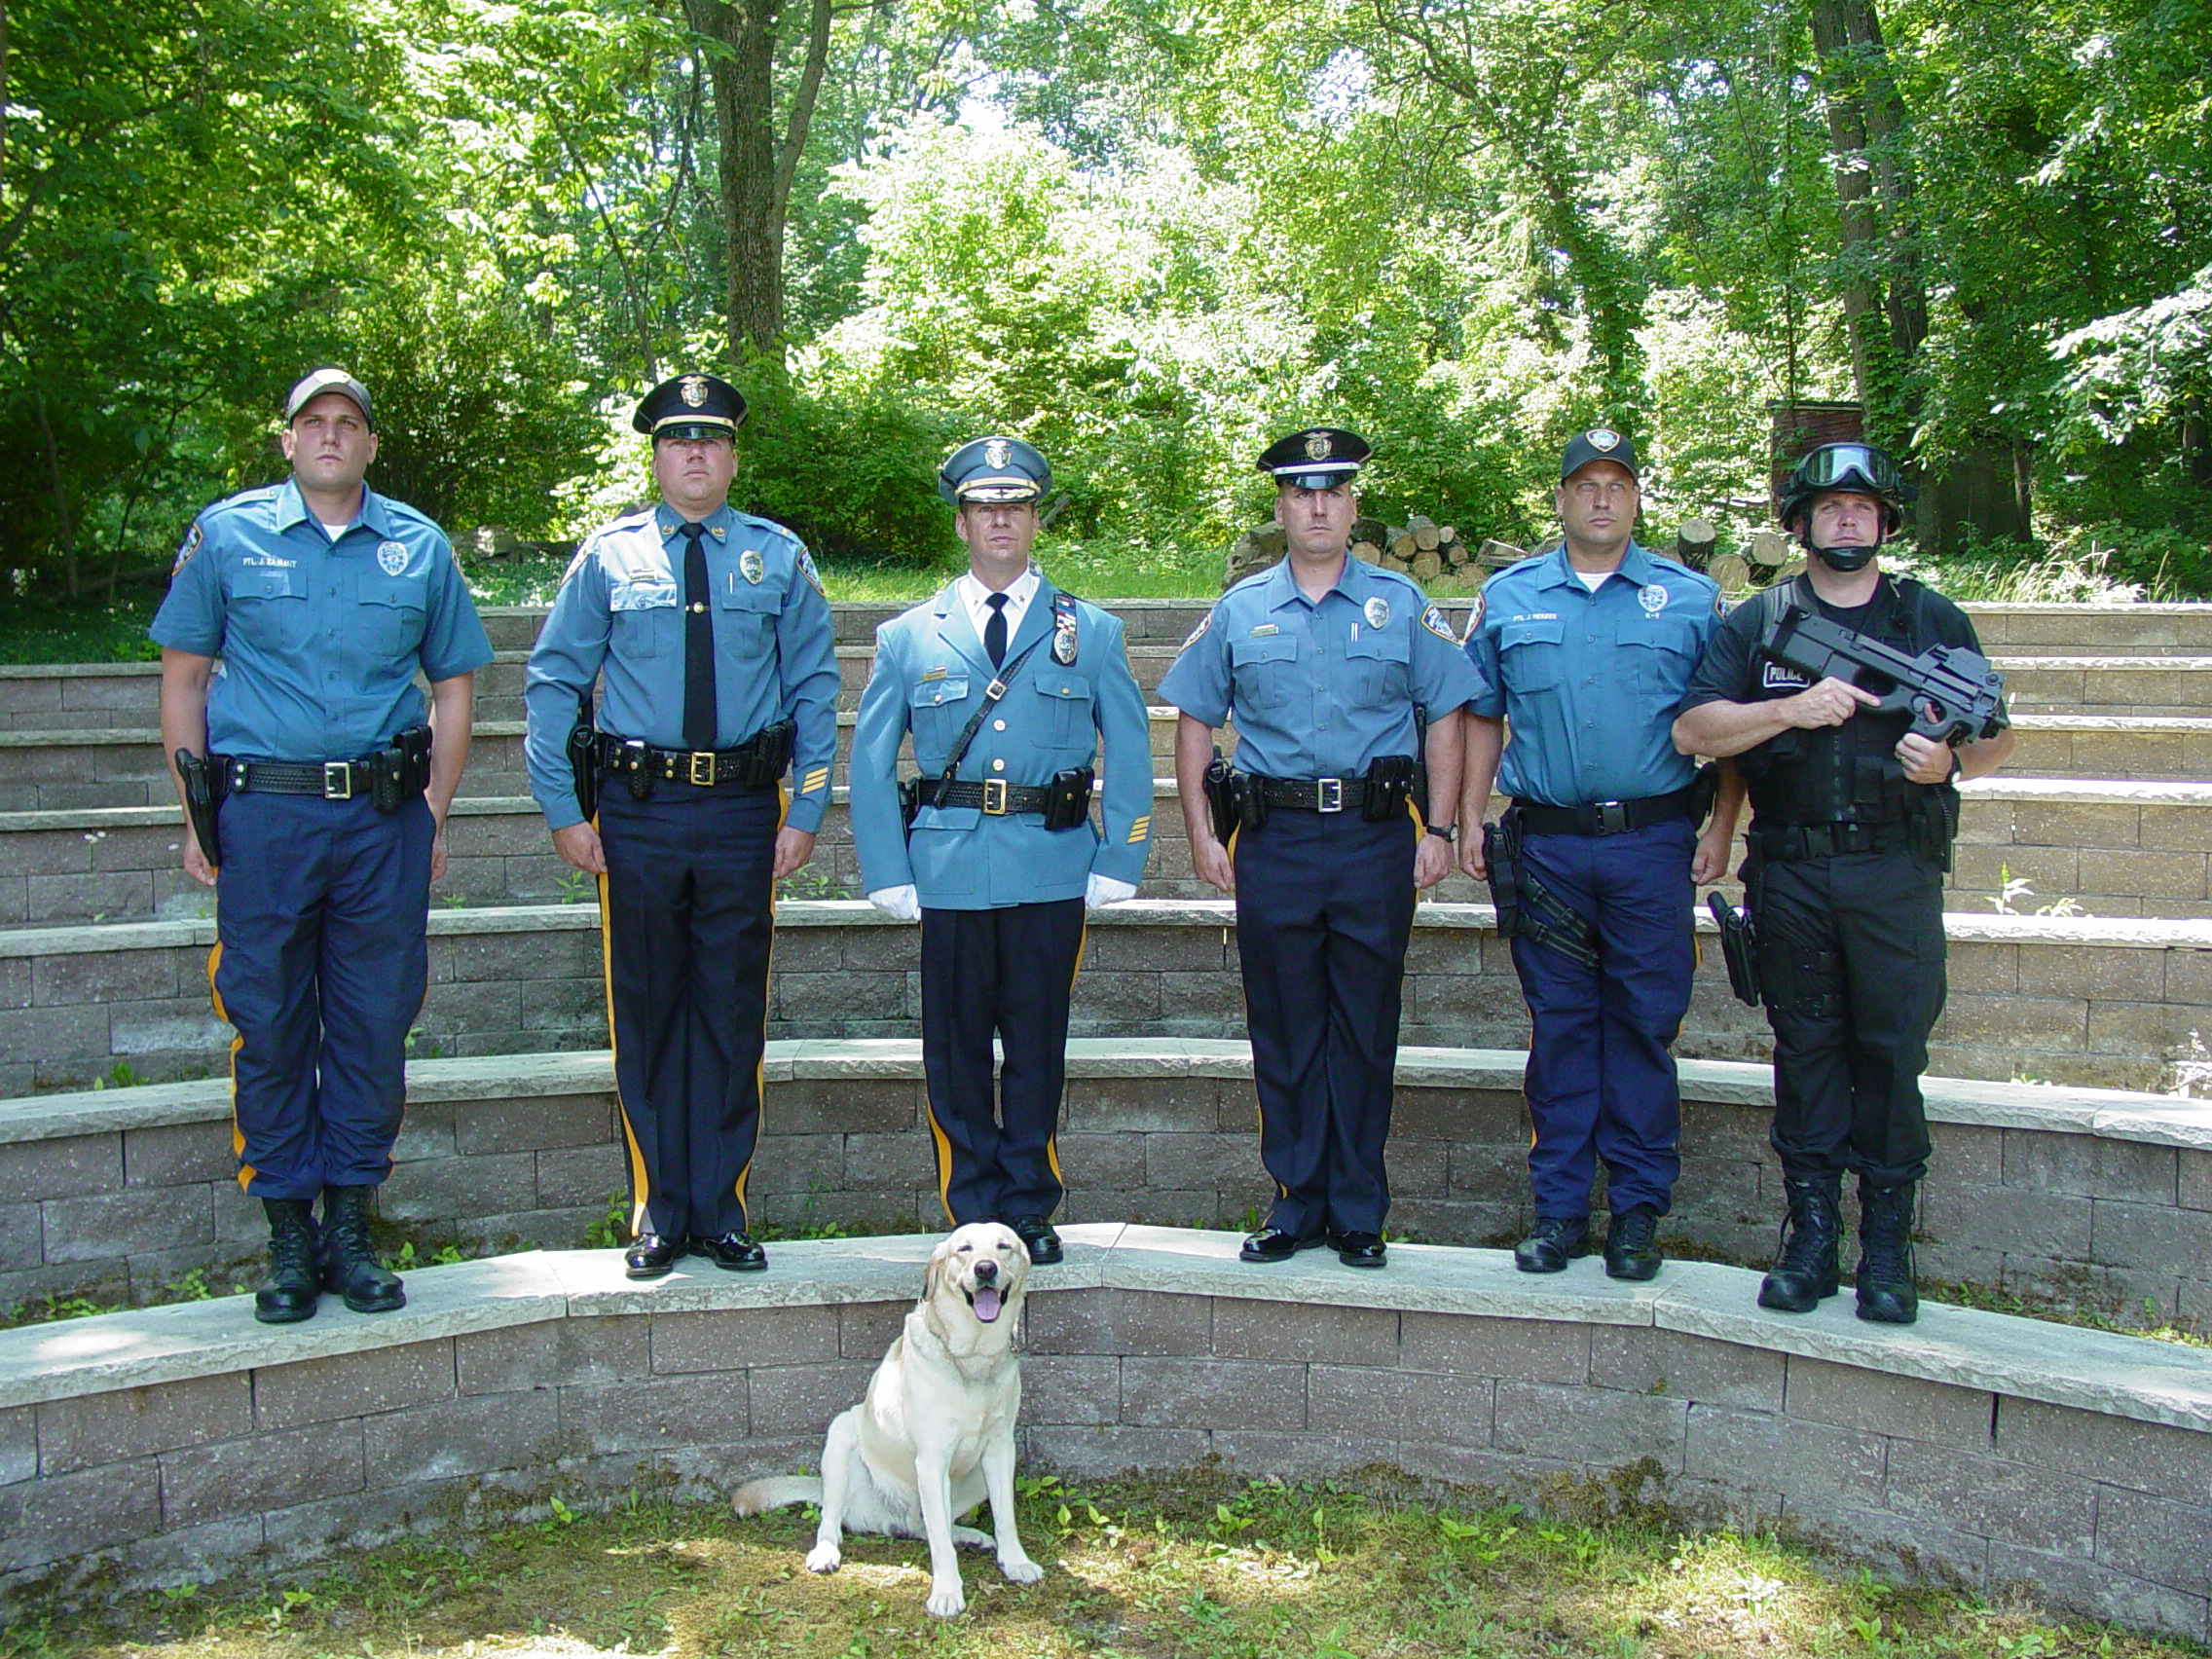 Lincoln Park Police Officers